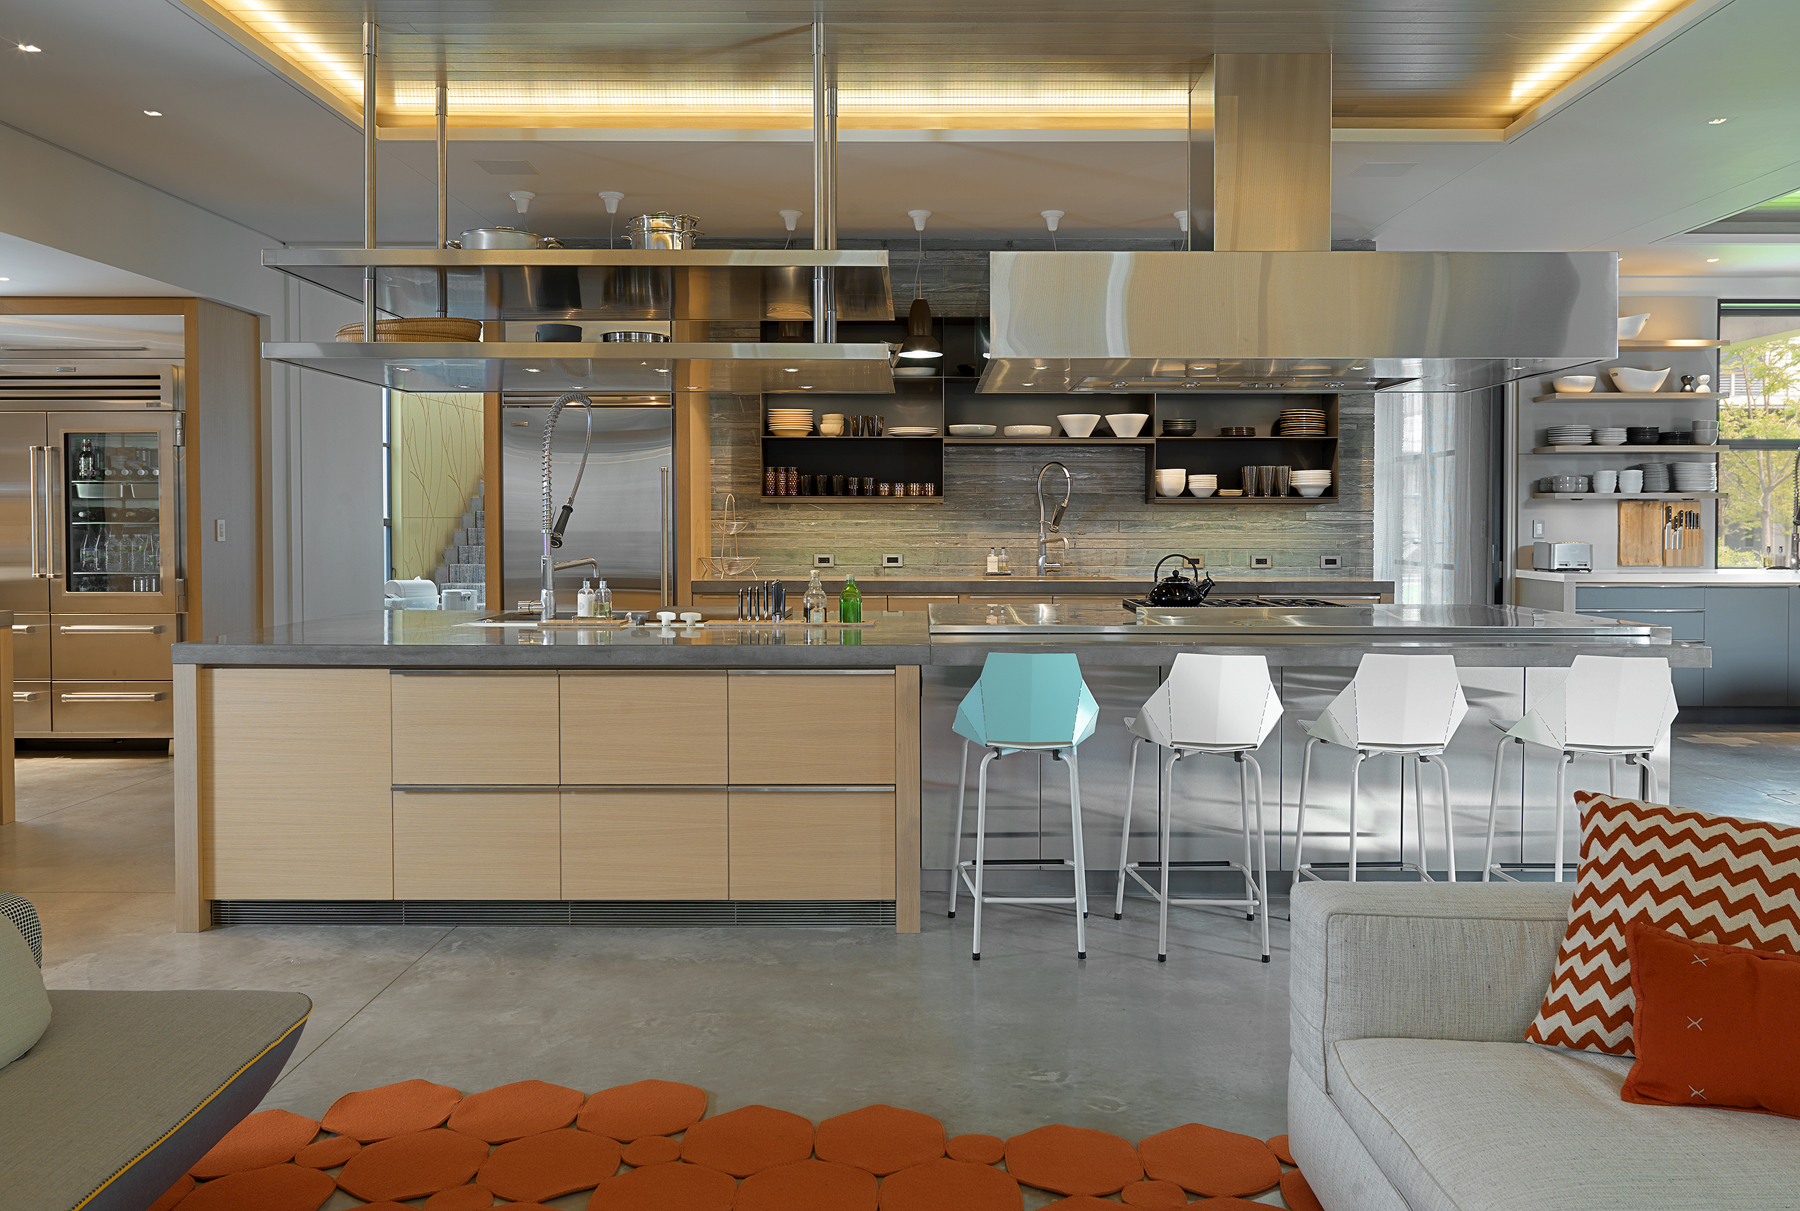 Winning Kitchen Design In Sub Zero And Wolf Regional Kitchen Design  Competition By Architect Adolfo Perez ...